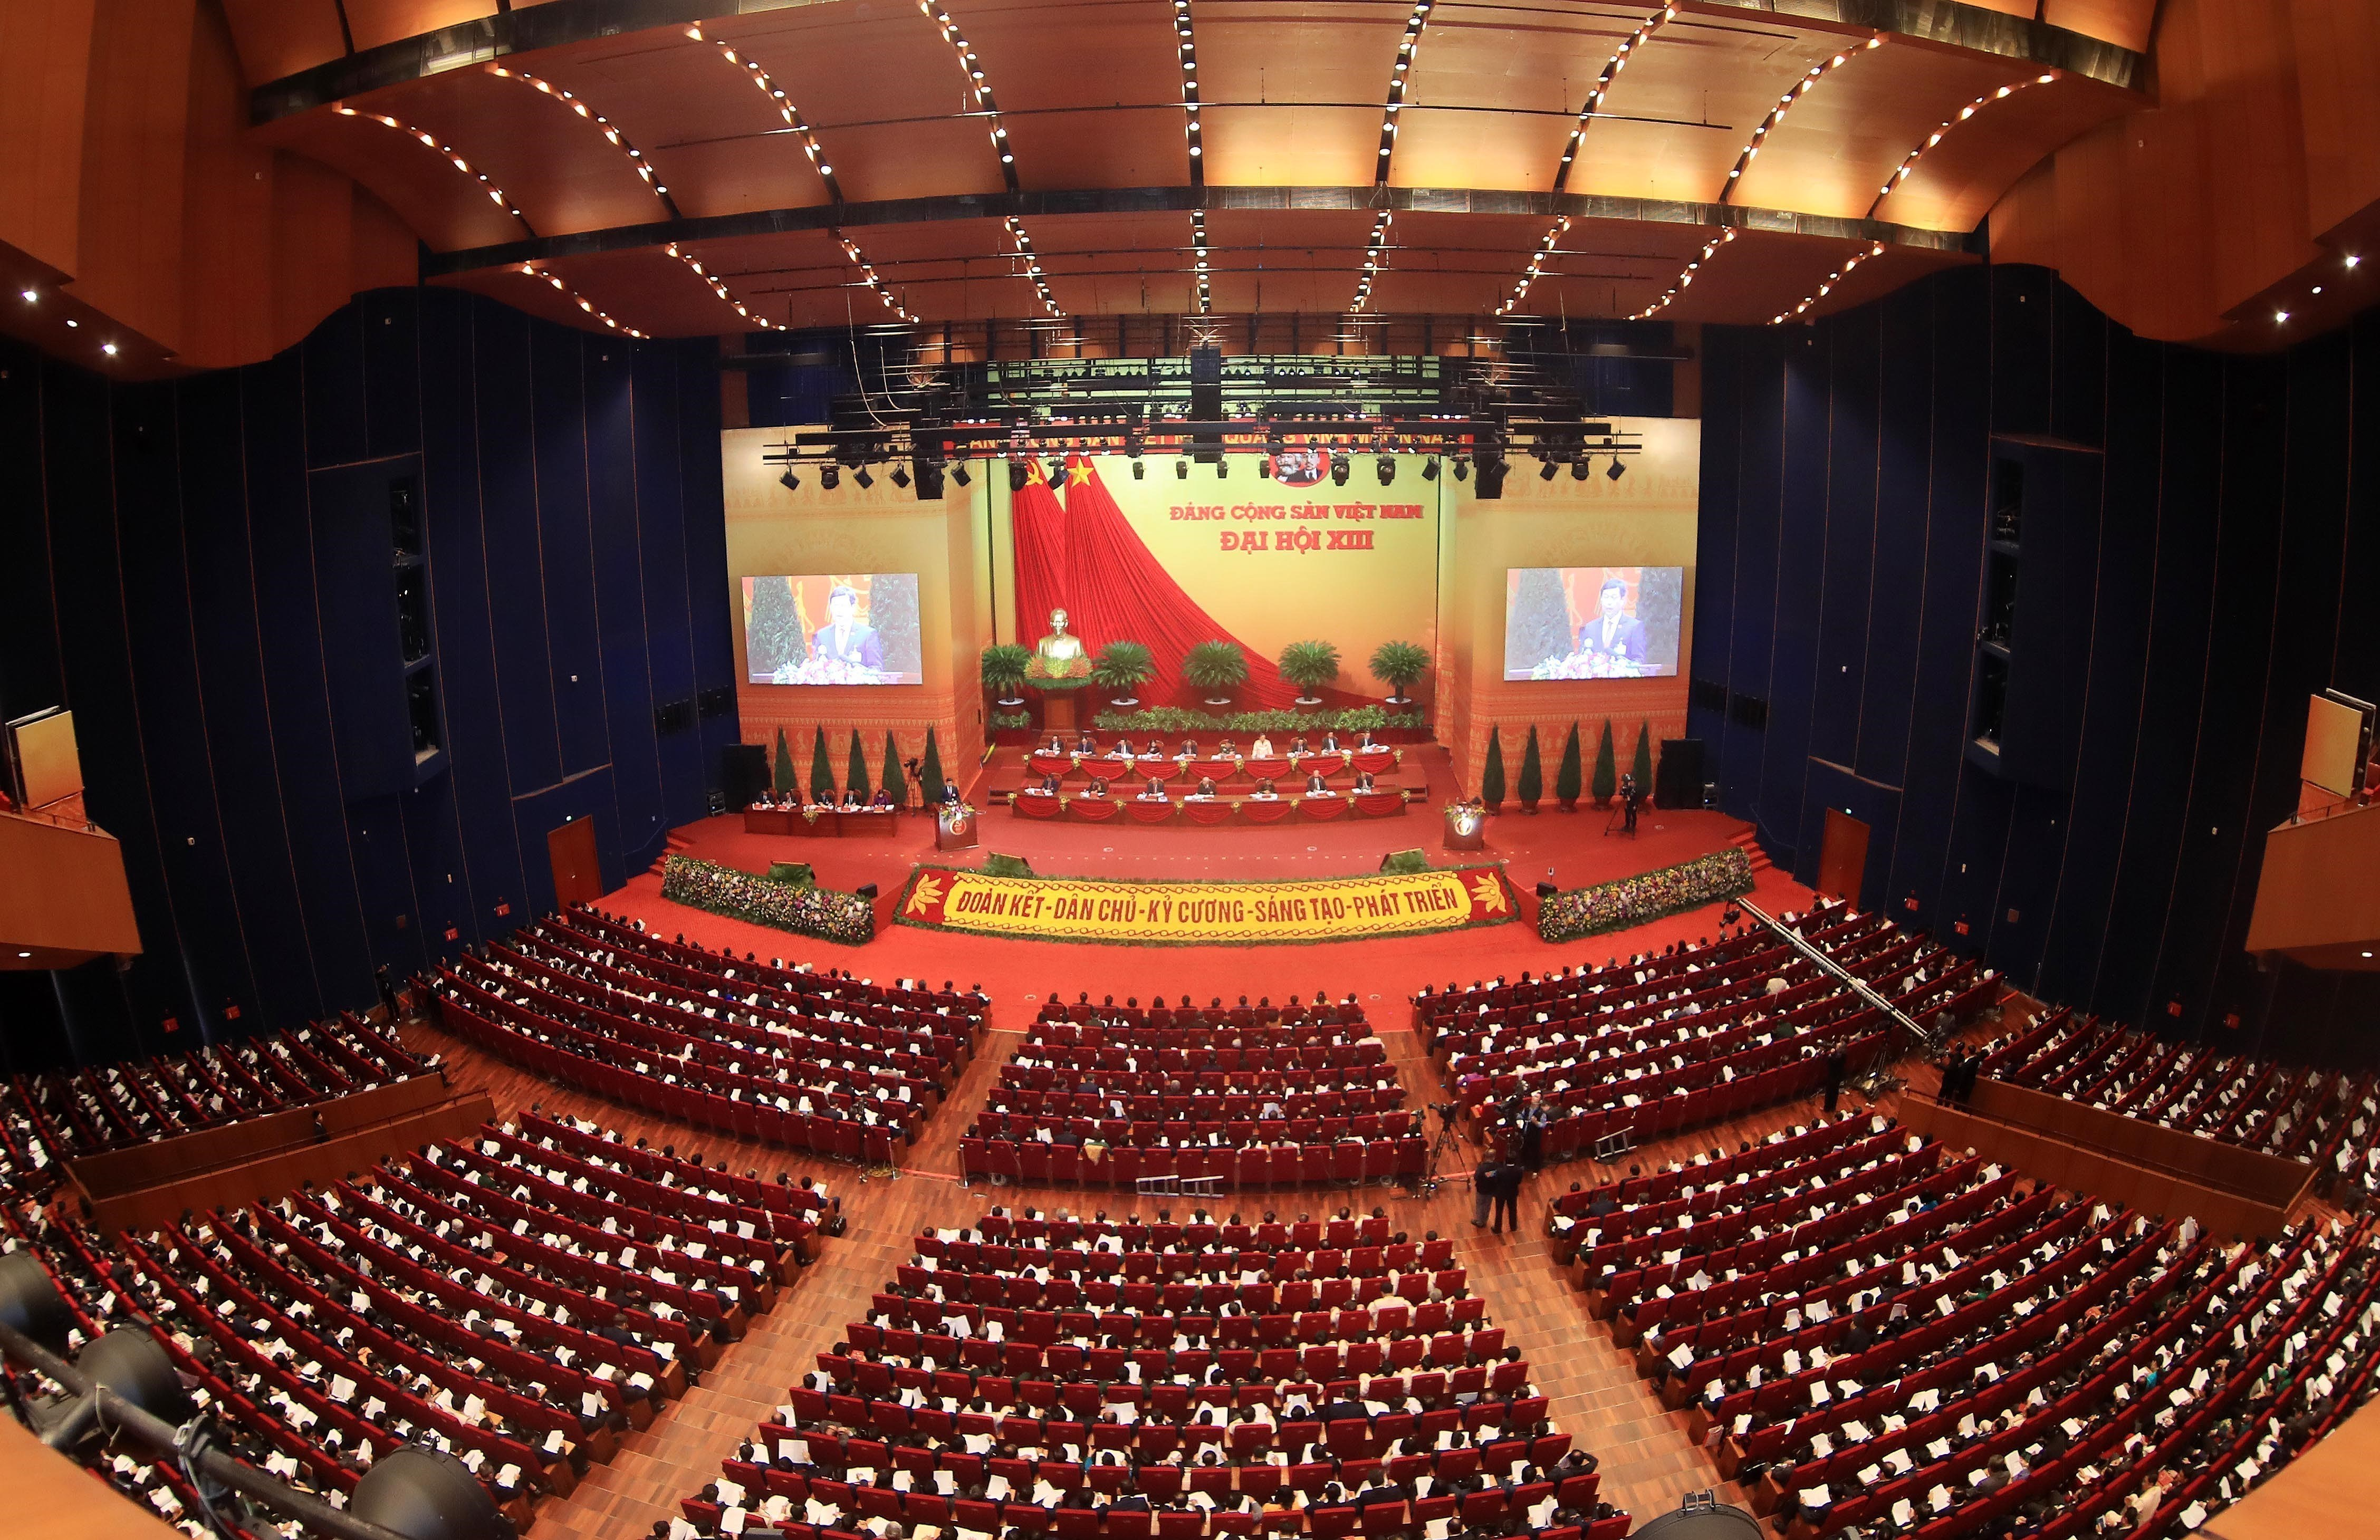 Congress continues discussion on draft documents hinh anh 3